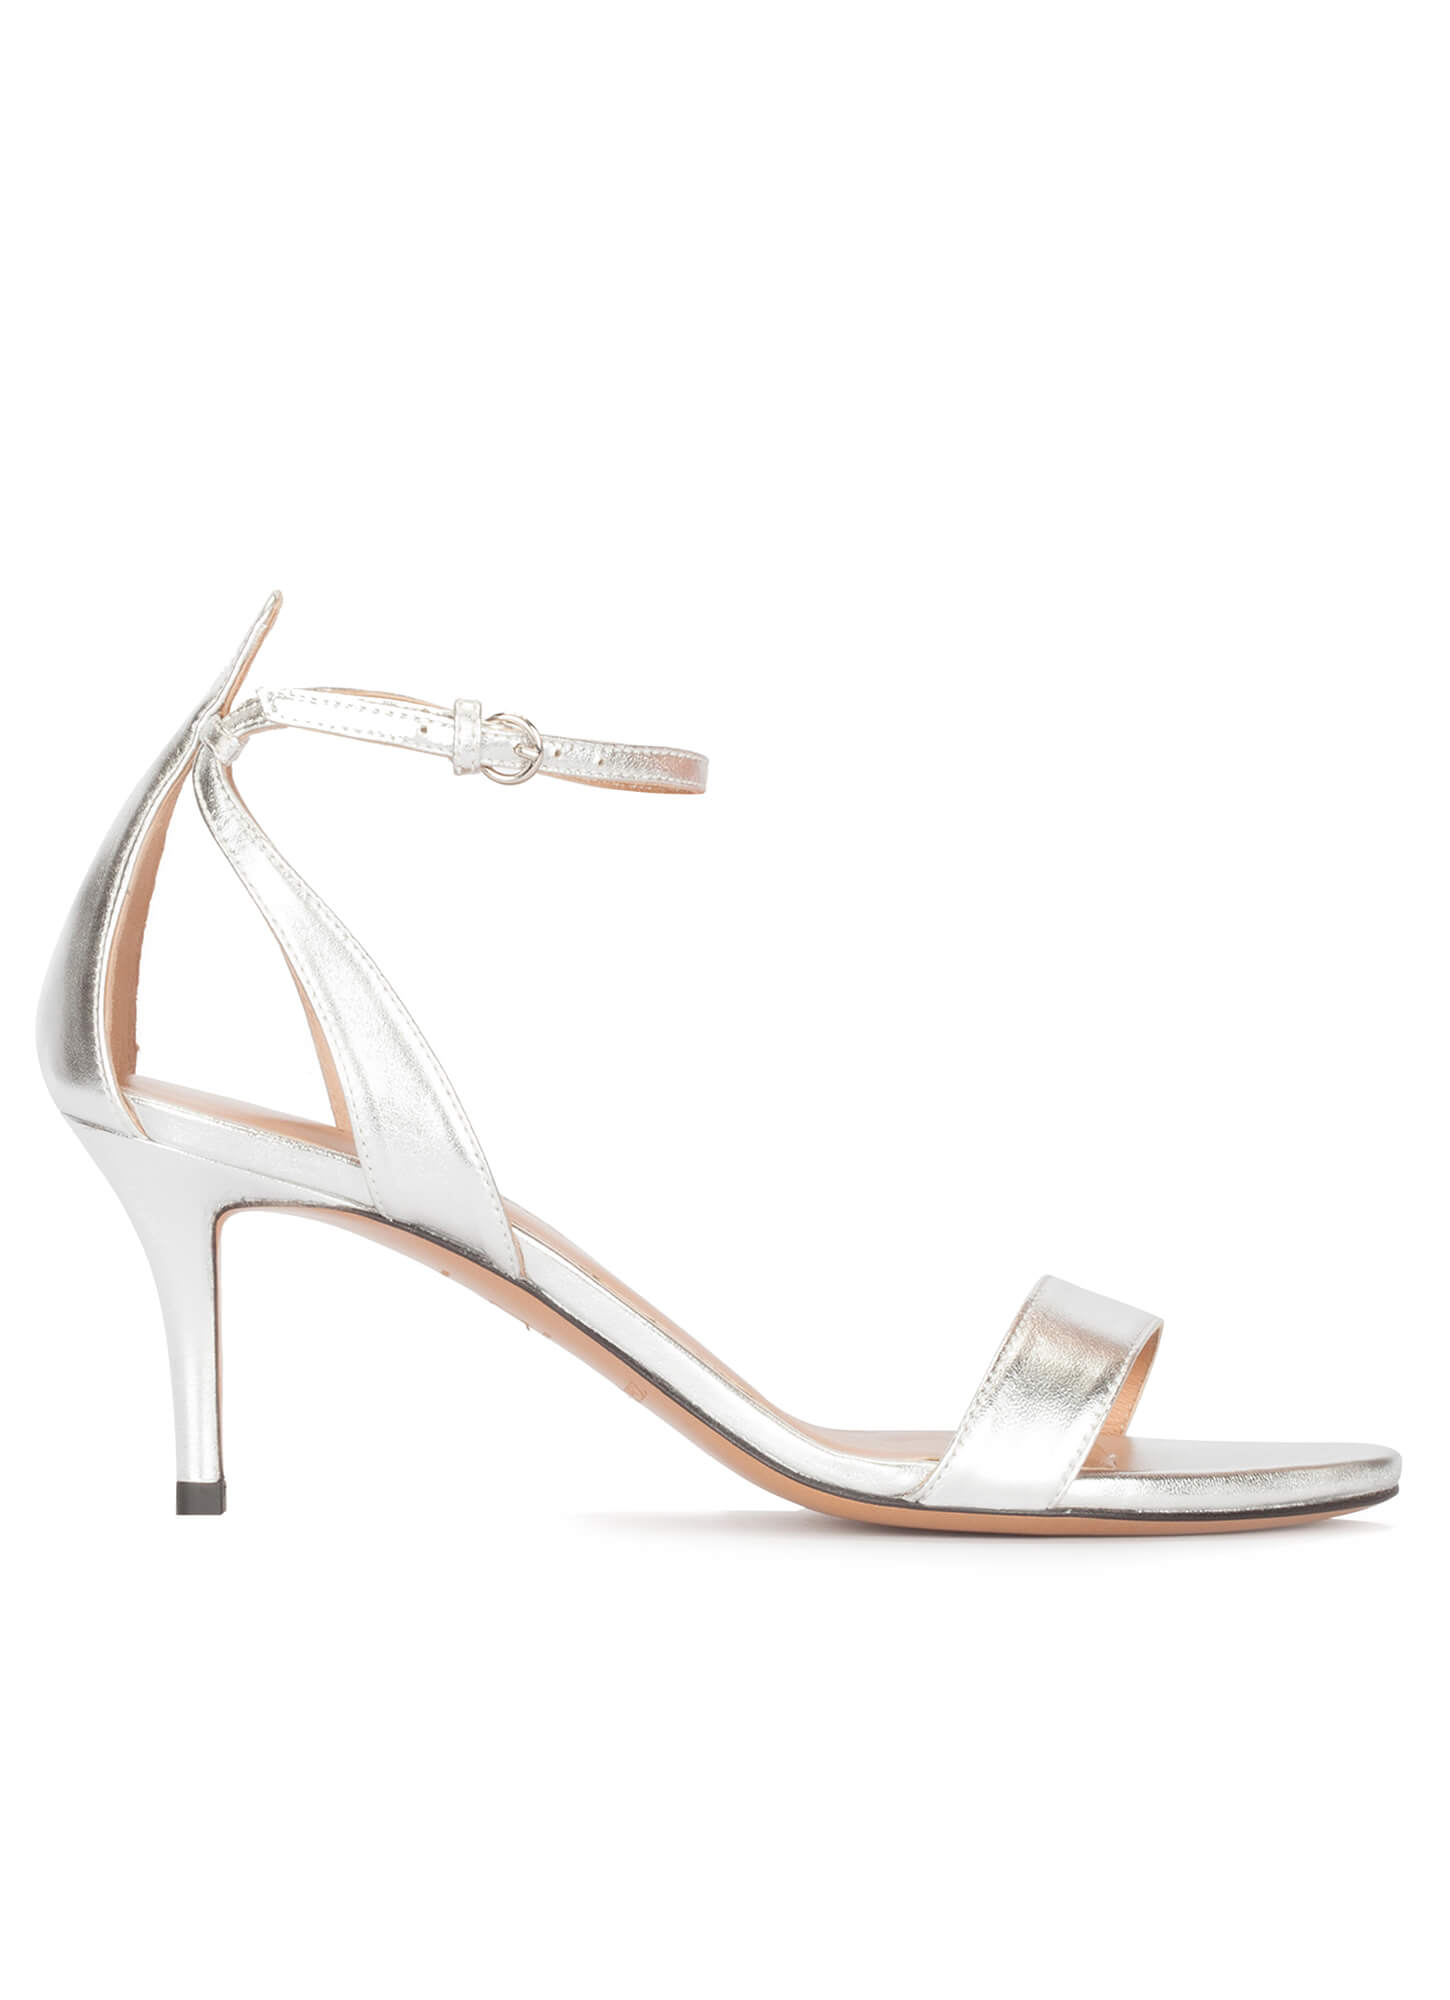 f5a96f35d Ankle strap mid heel sandals in silver leather . PURA LOPEZ